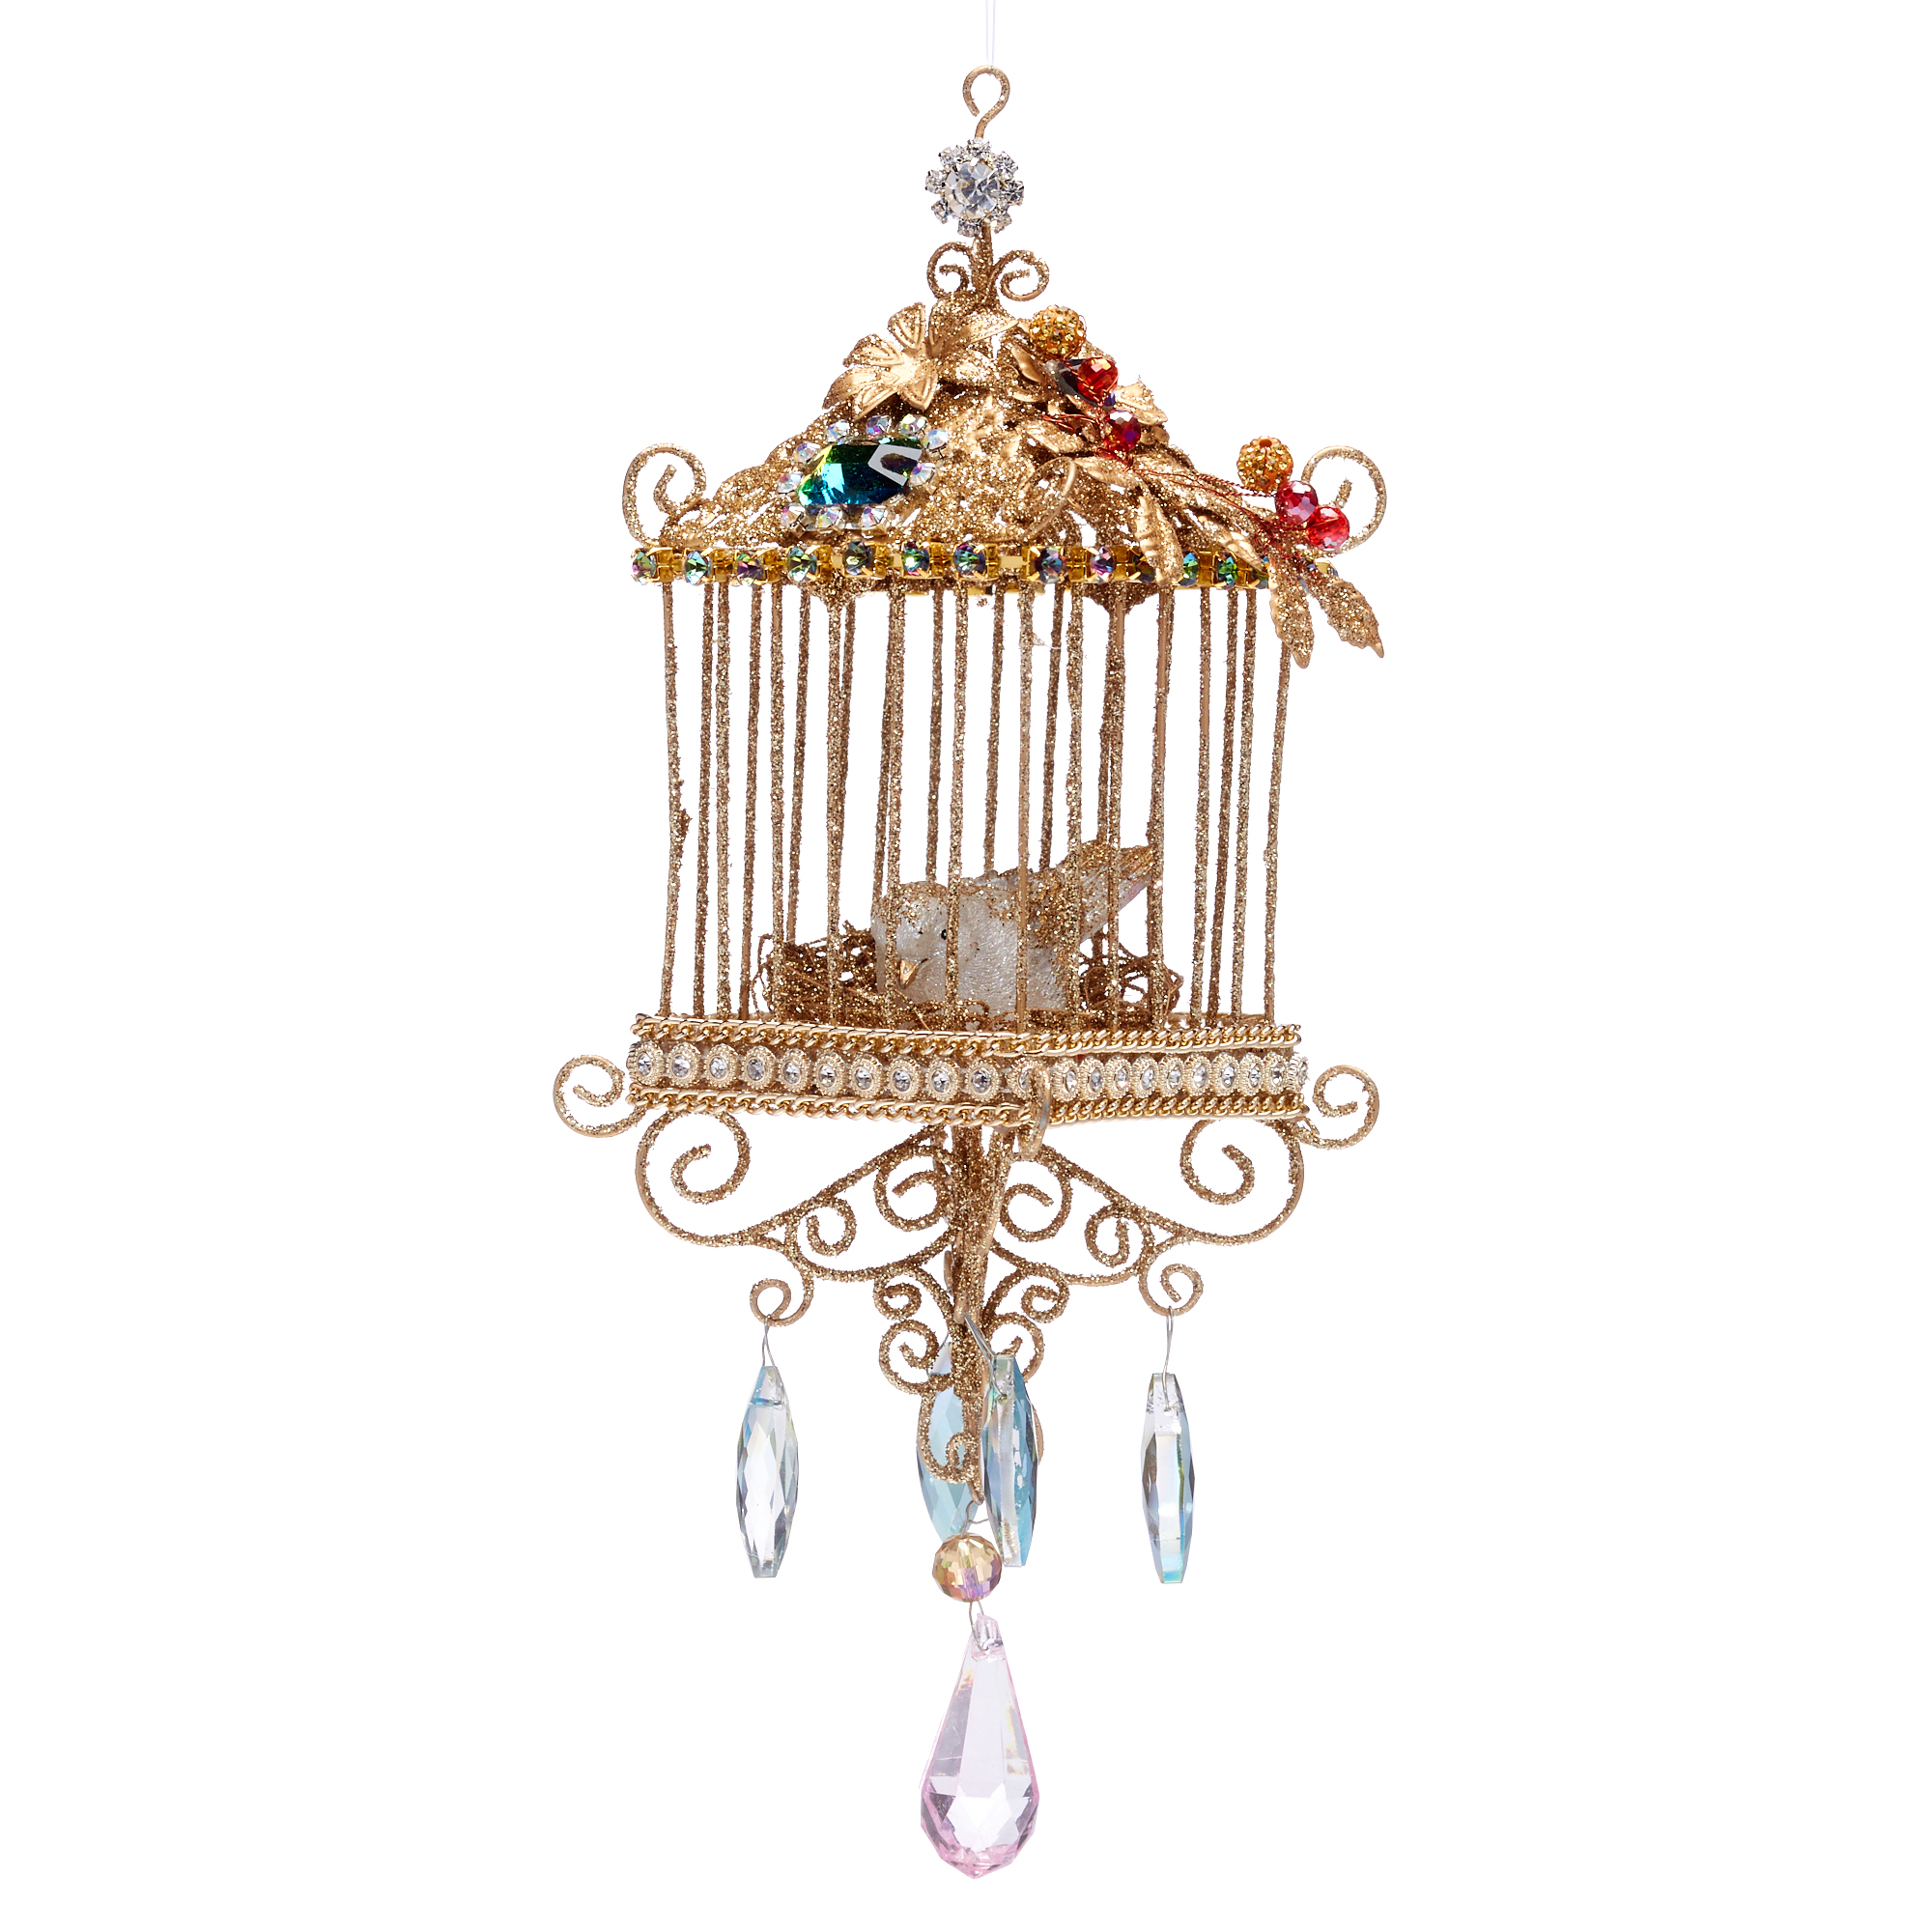 Bohemian Square Birdcage Ornament